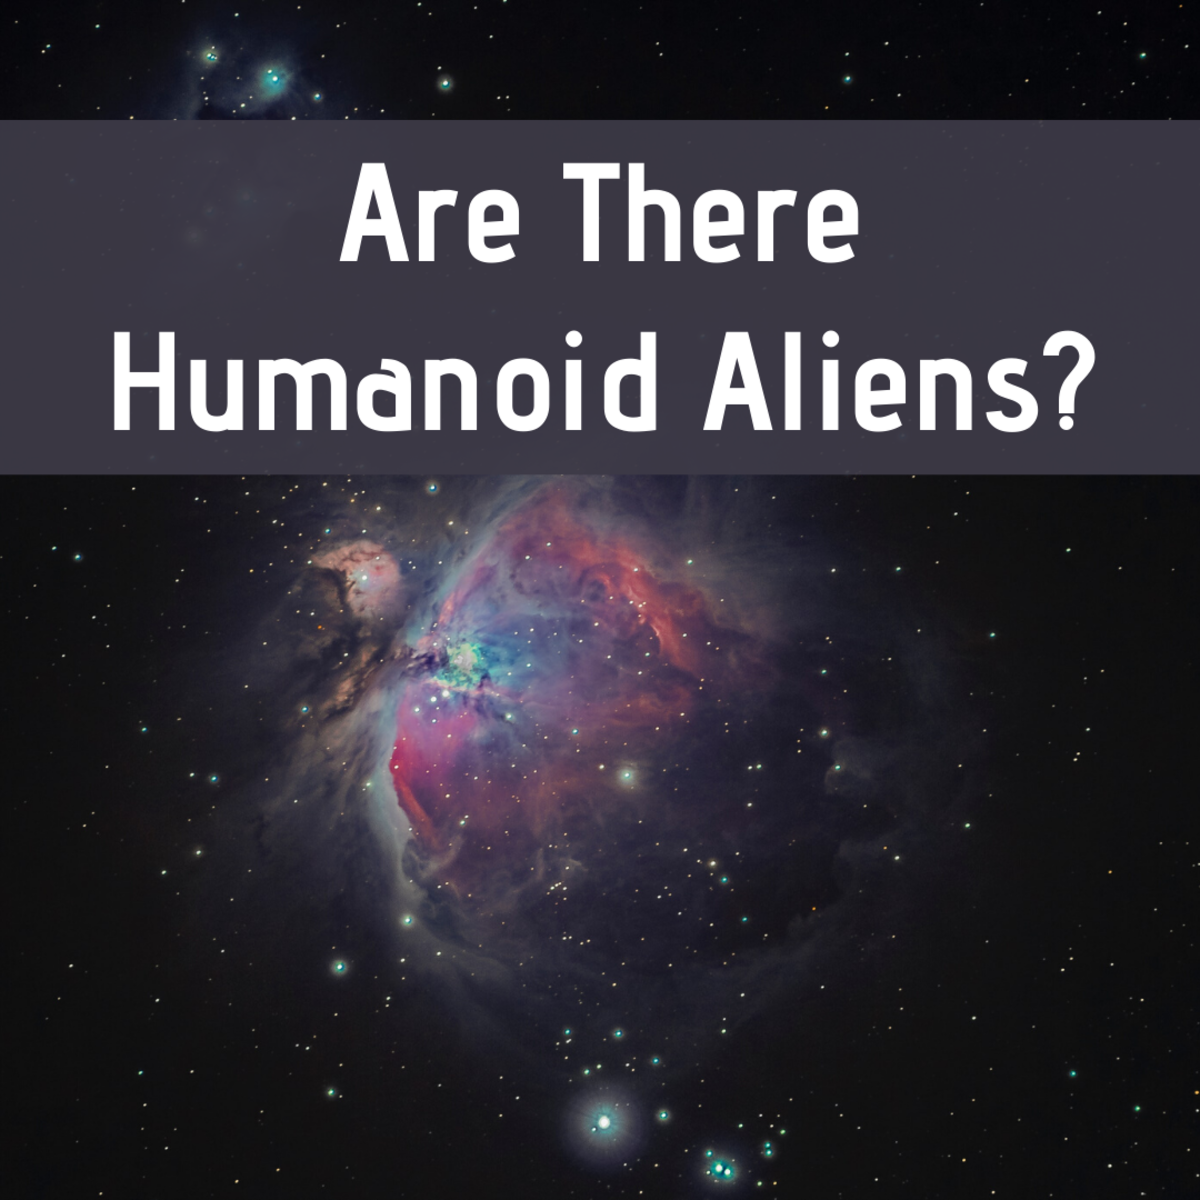 Review whether or not it's likely that humanoid alien species exist.